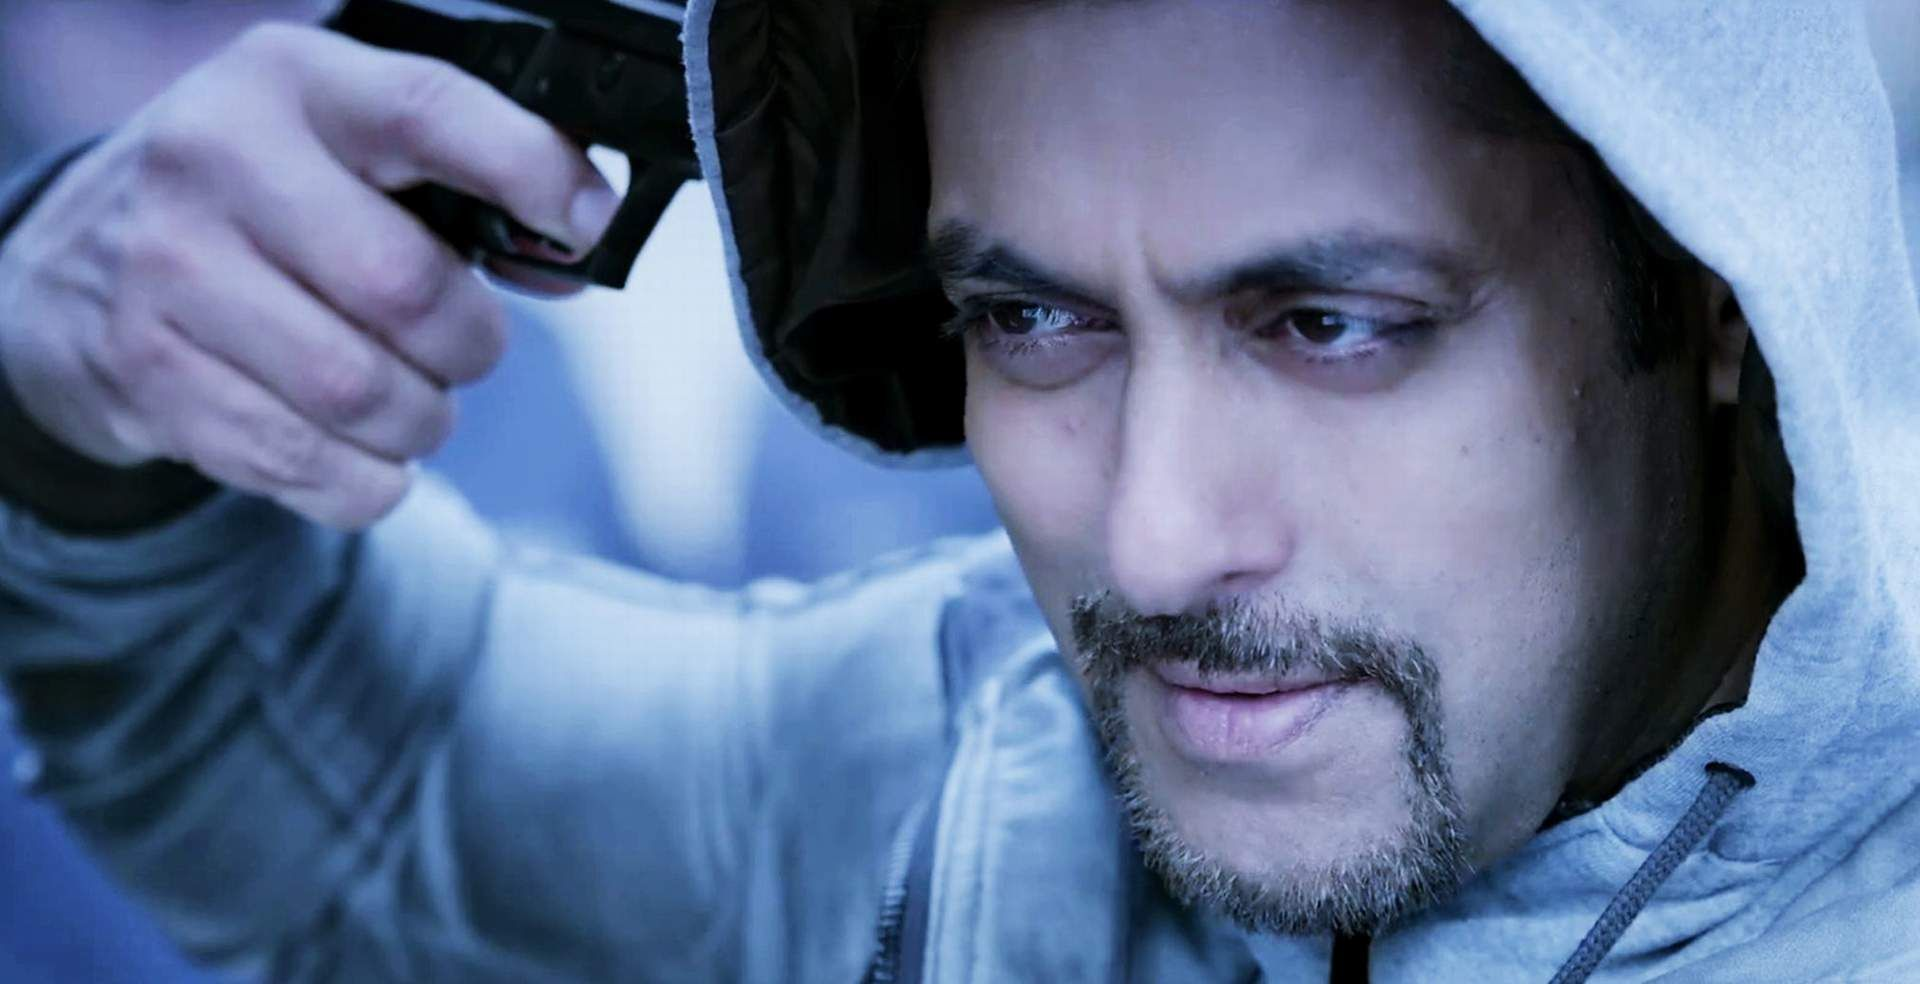 Salman Khan Kick Movie Gun Stills Hd Wallpaper Salman Khan